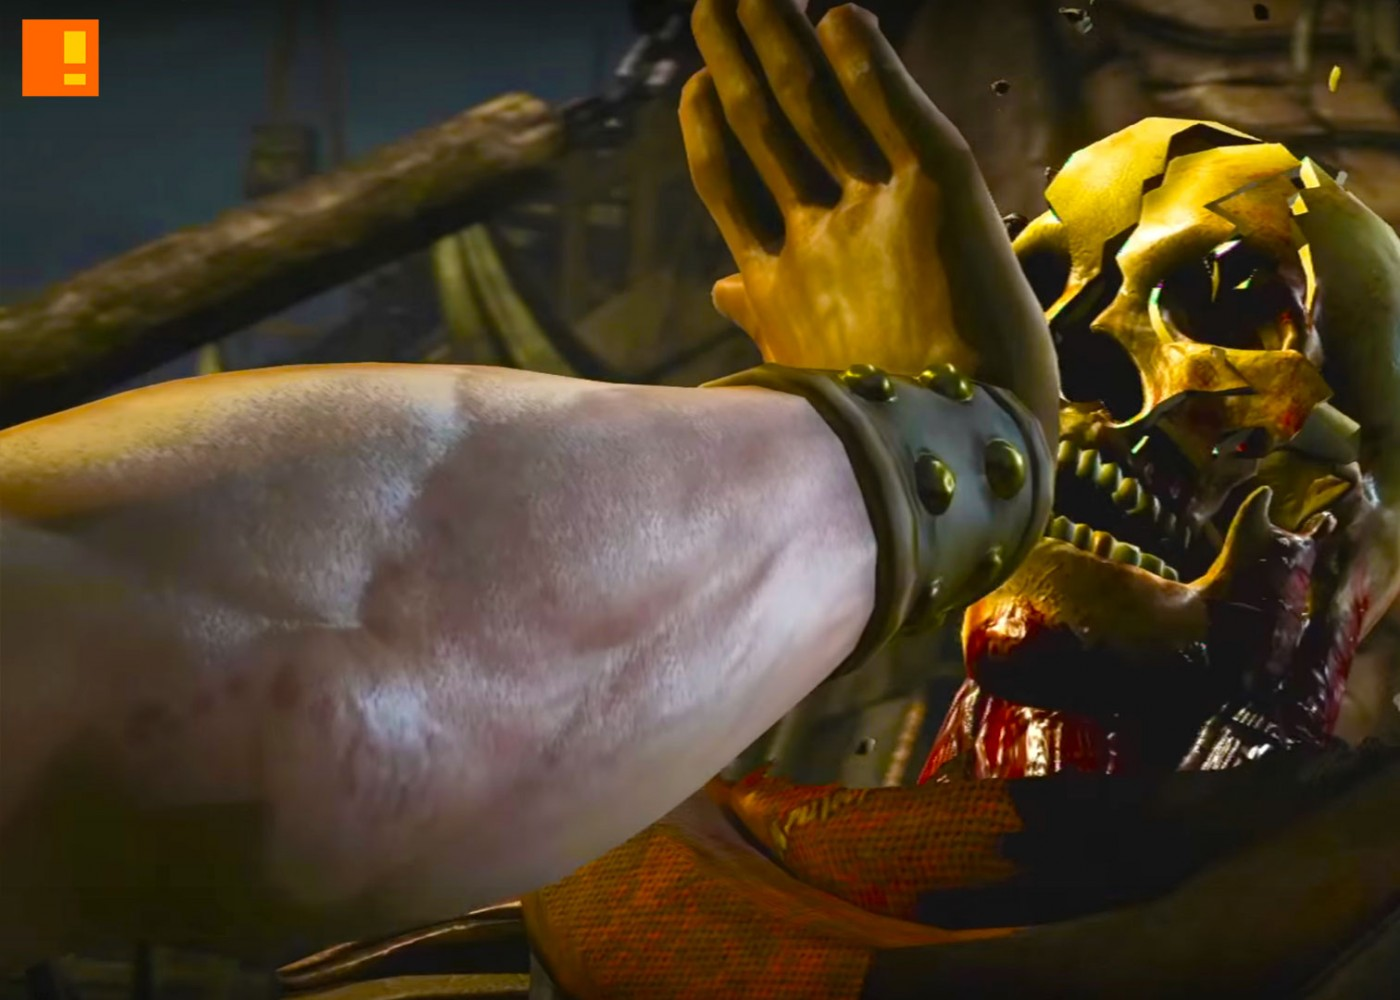 mortal kombat xl. wb games. netherrealm studio. x-ray. the action pixel. @theactionpixel